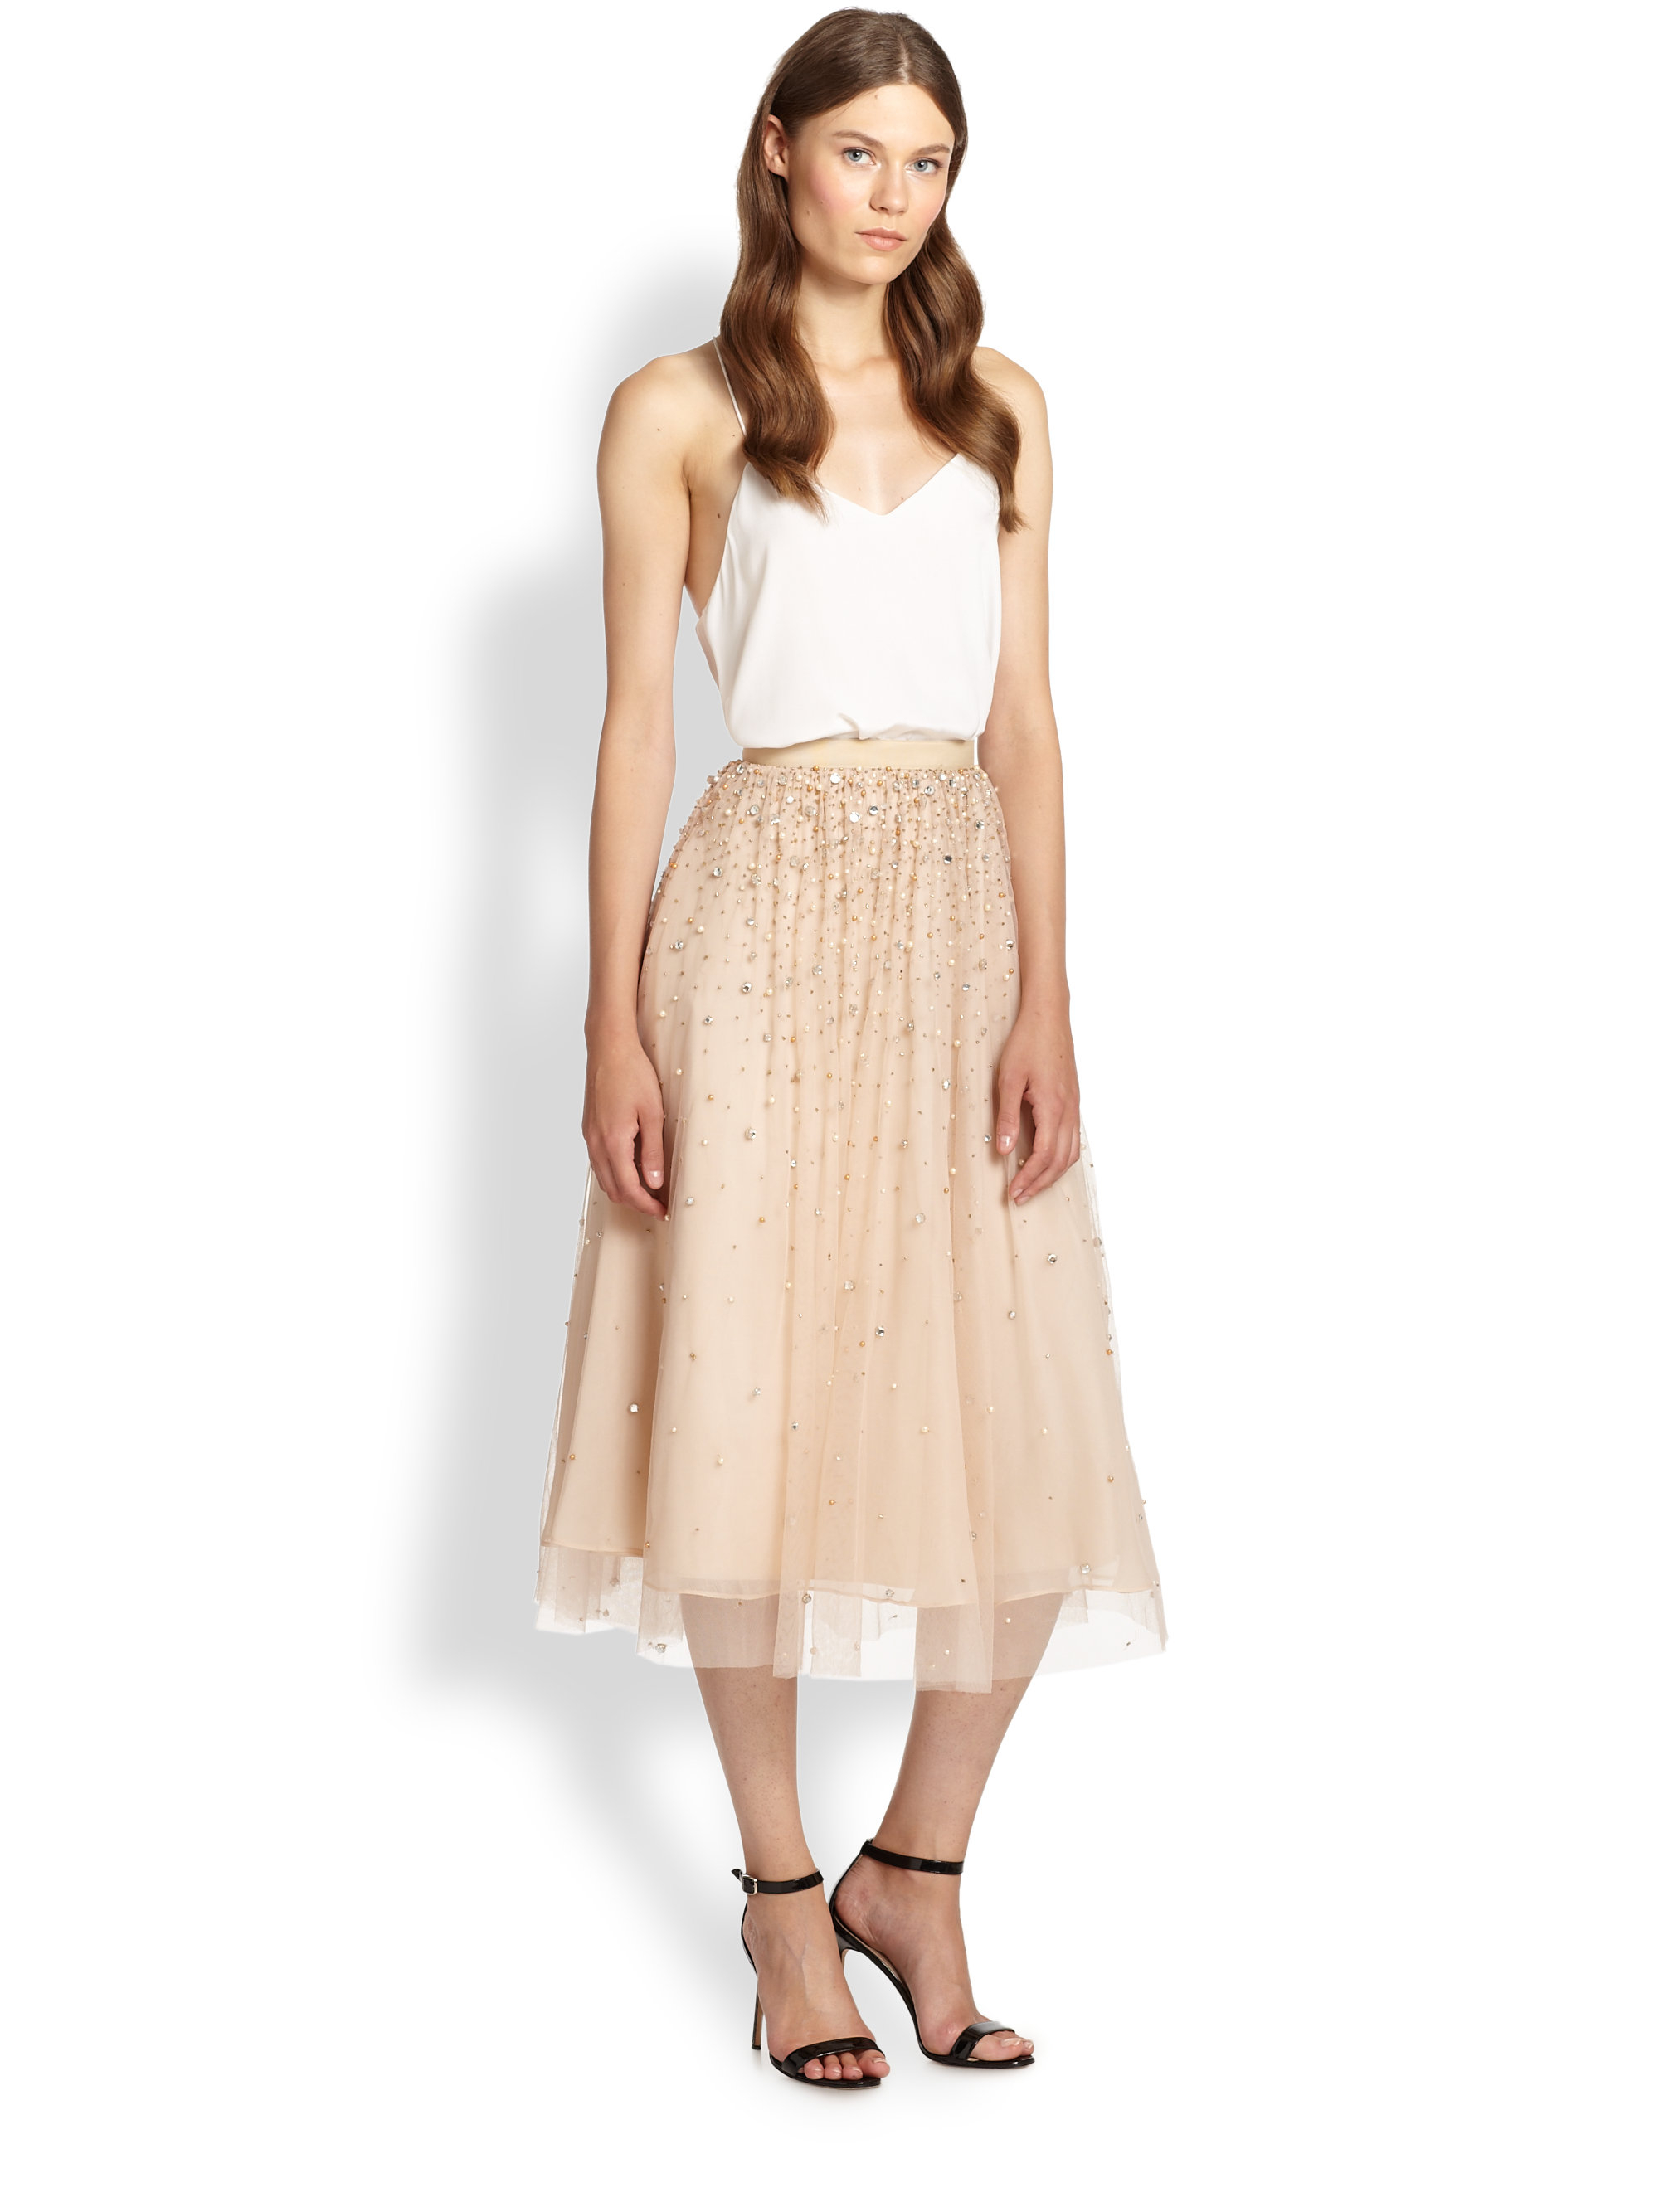 2e80926bac Gallery. Previously sold at: Saks Fifth Avenue · Women's Tulle Skirts